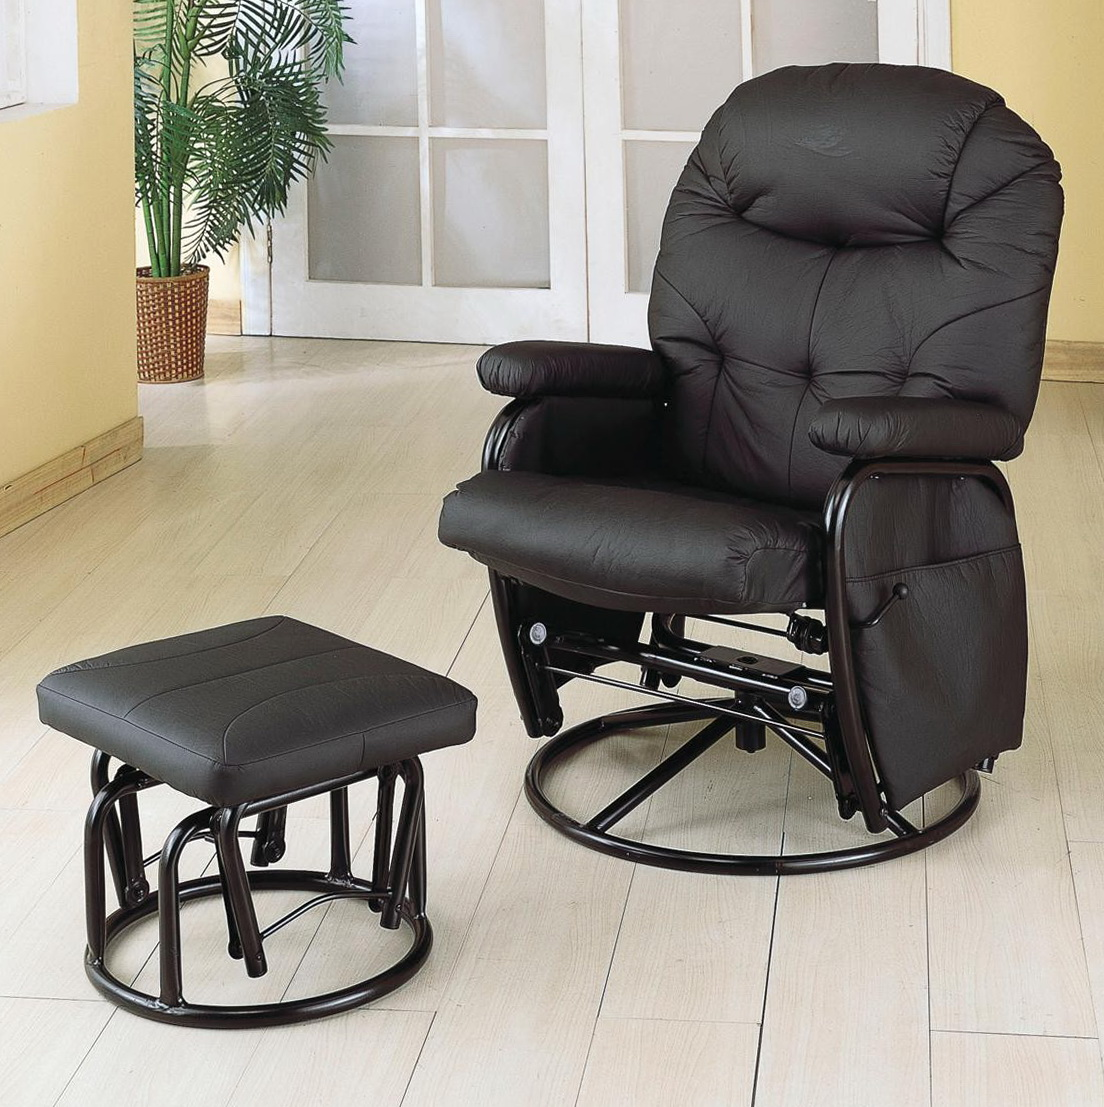 glider chair covers canada heavy duty sports chairs cushion replacement walmart home design ideas